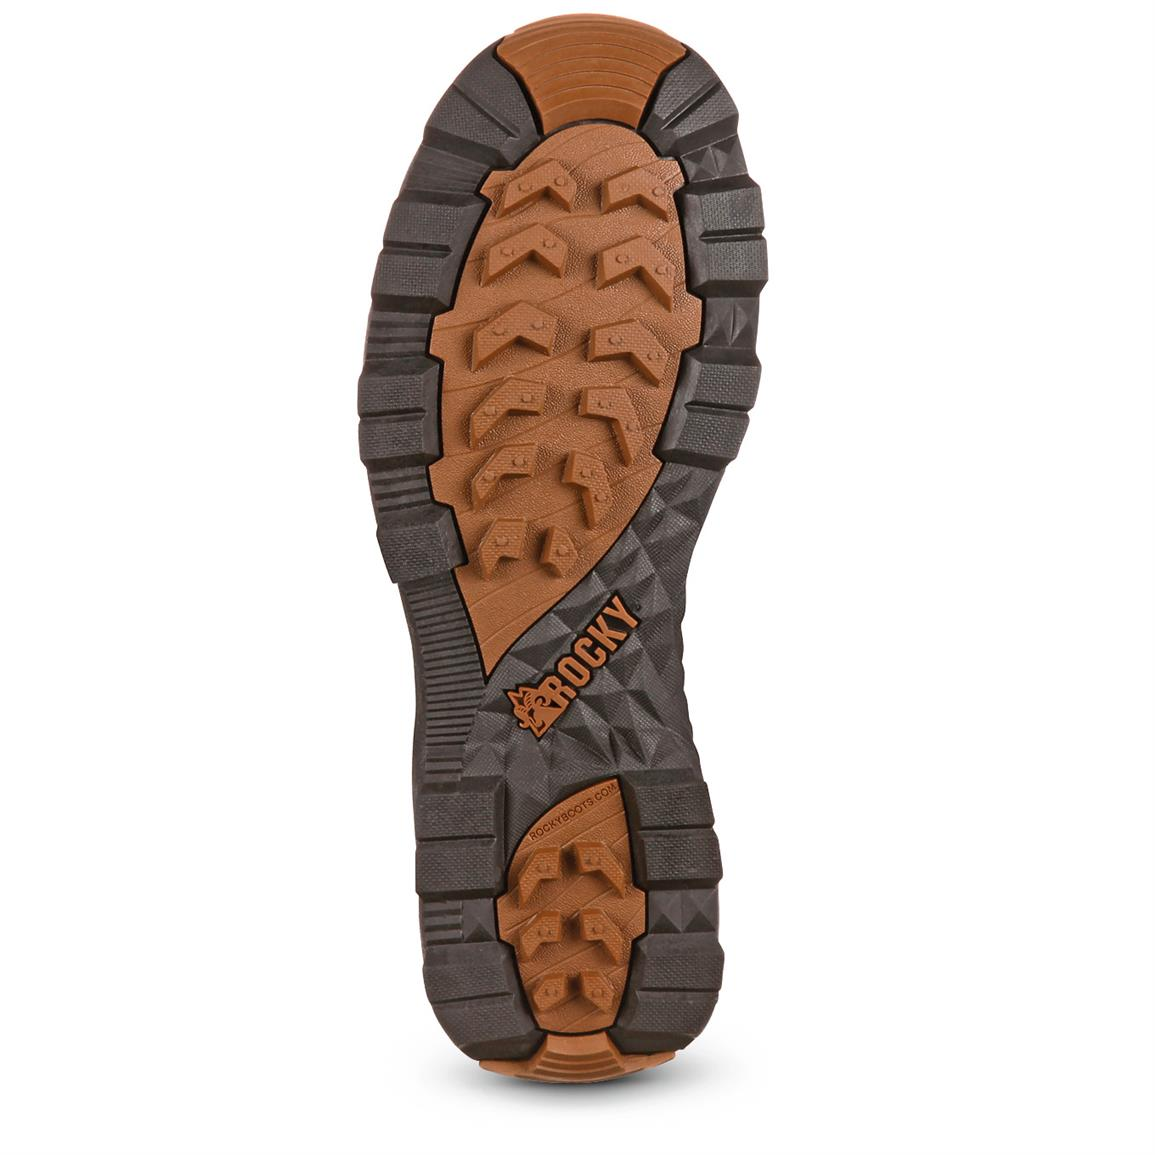 Rubber outsole offers excellent traction on a variety of surfaces